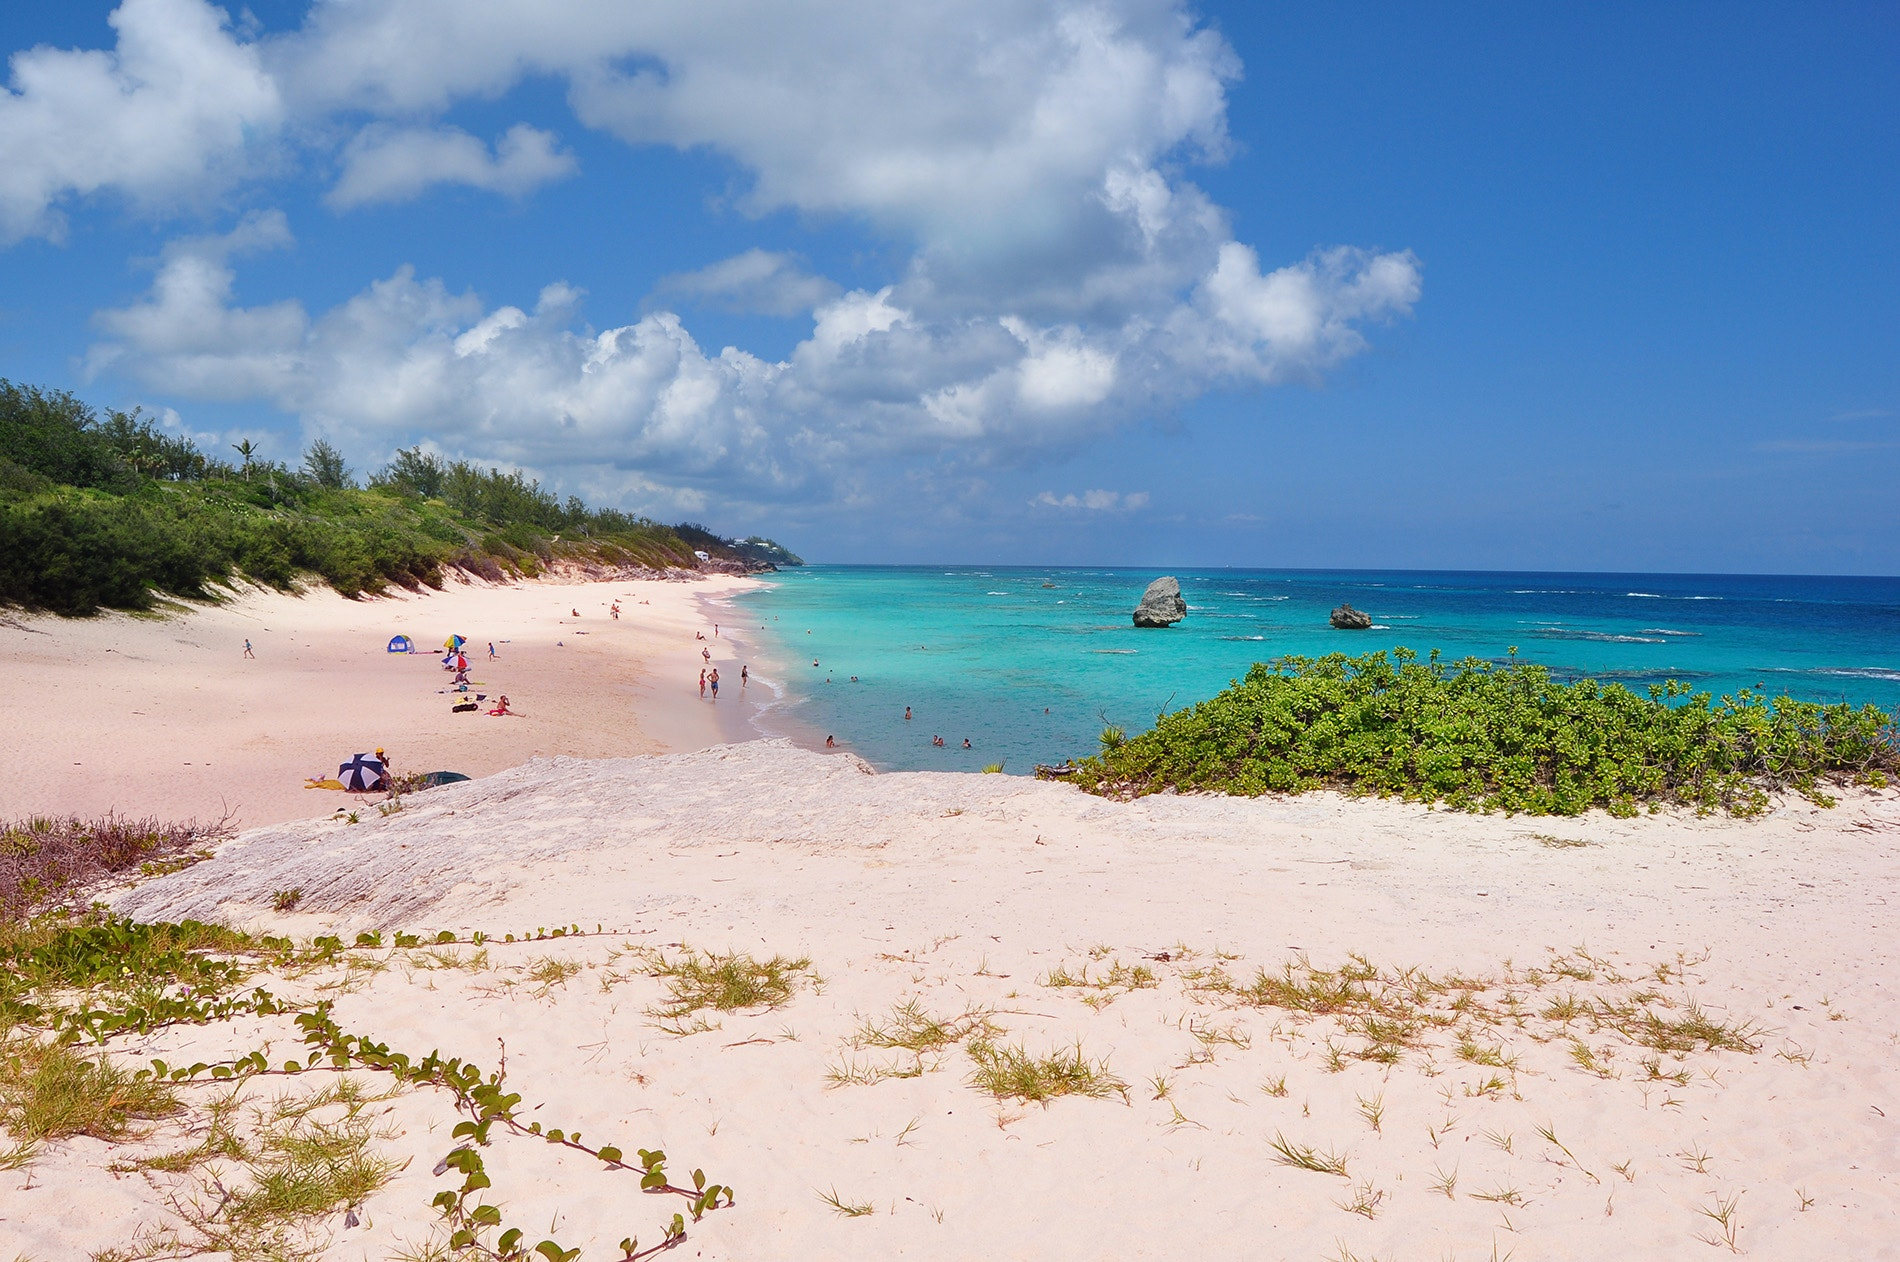 Horseshoe Bay Beach, with its pink-tinged sands, is Bermuda's most iconic beach.